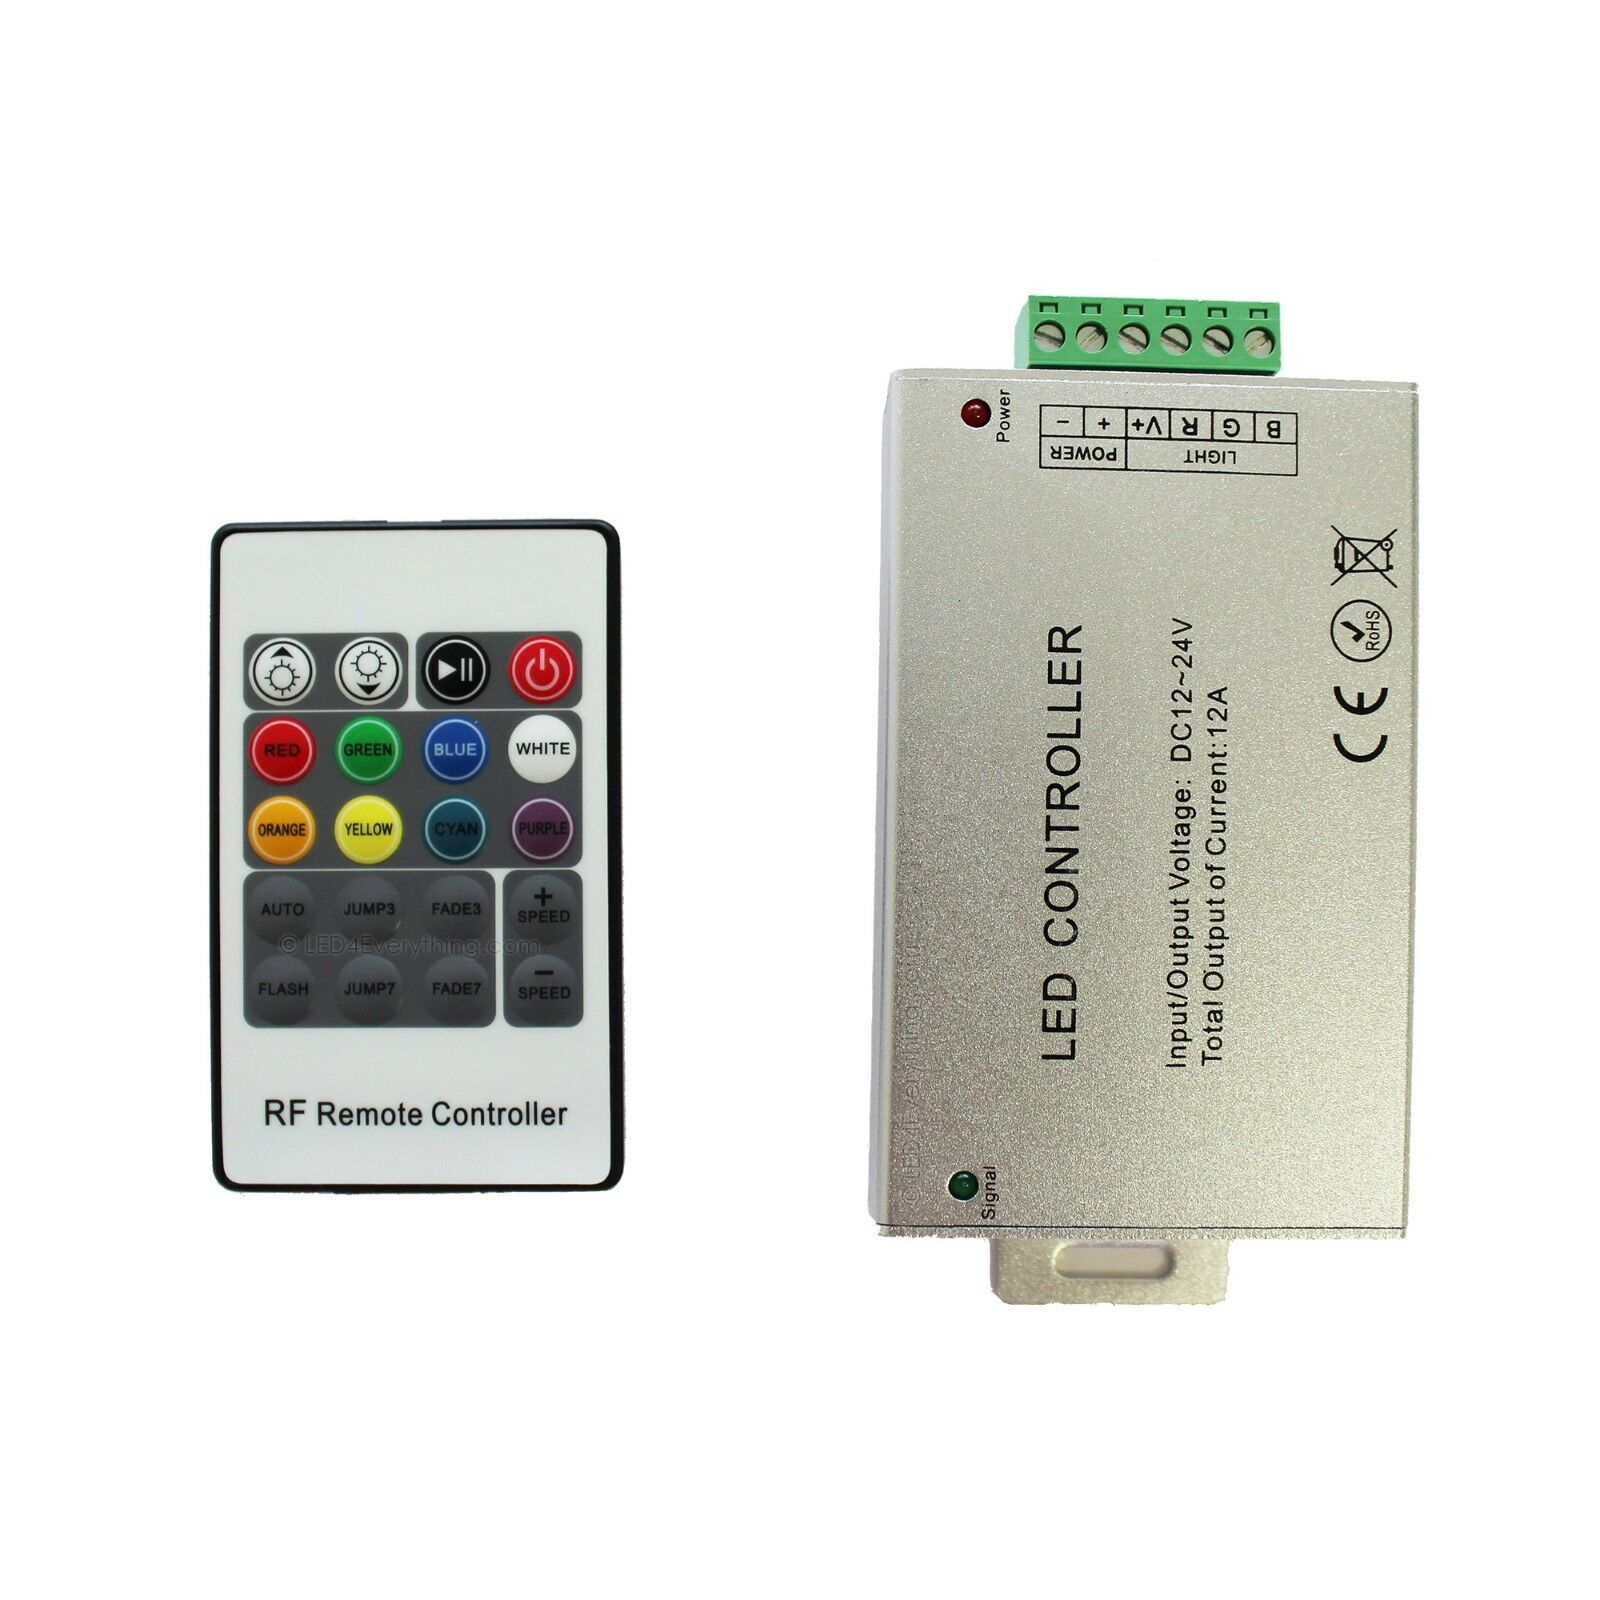 20 Key Rf Remote Wireless Rgb Controller Dc 12v 12a For Smd 5050 Led Strips With Keys Control 3528 Strip